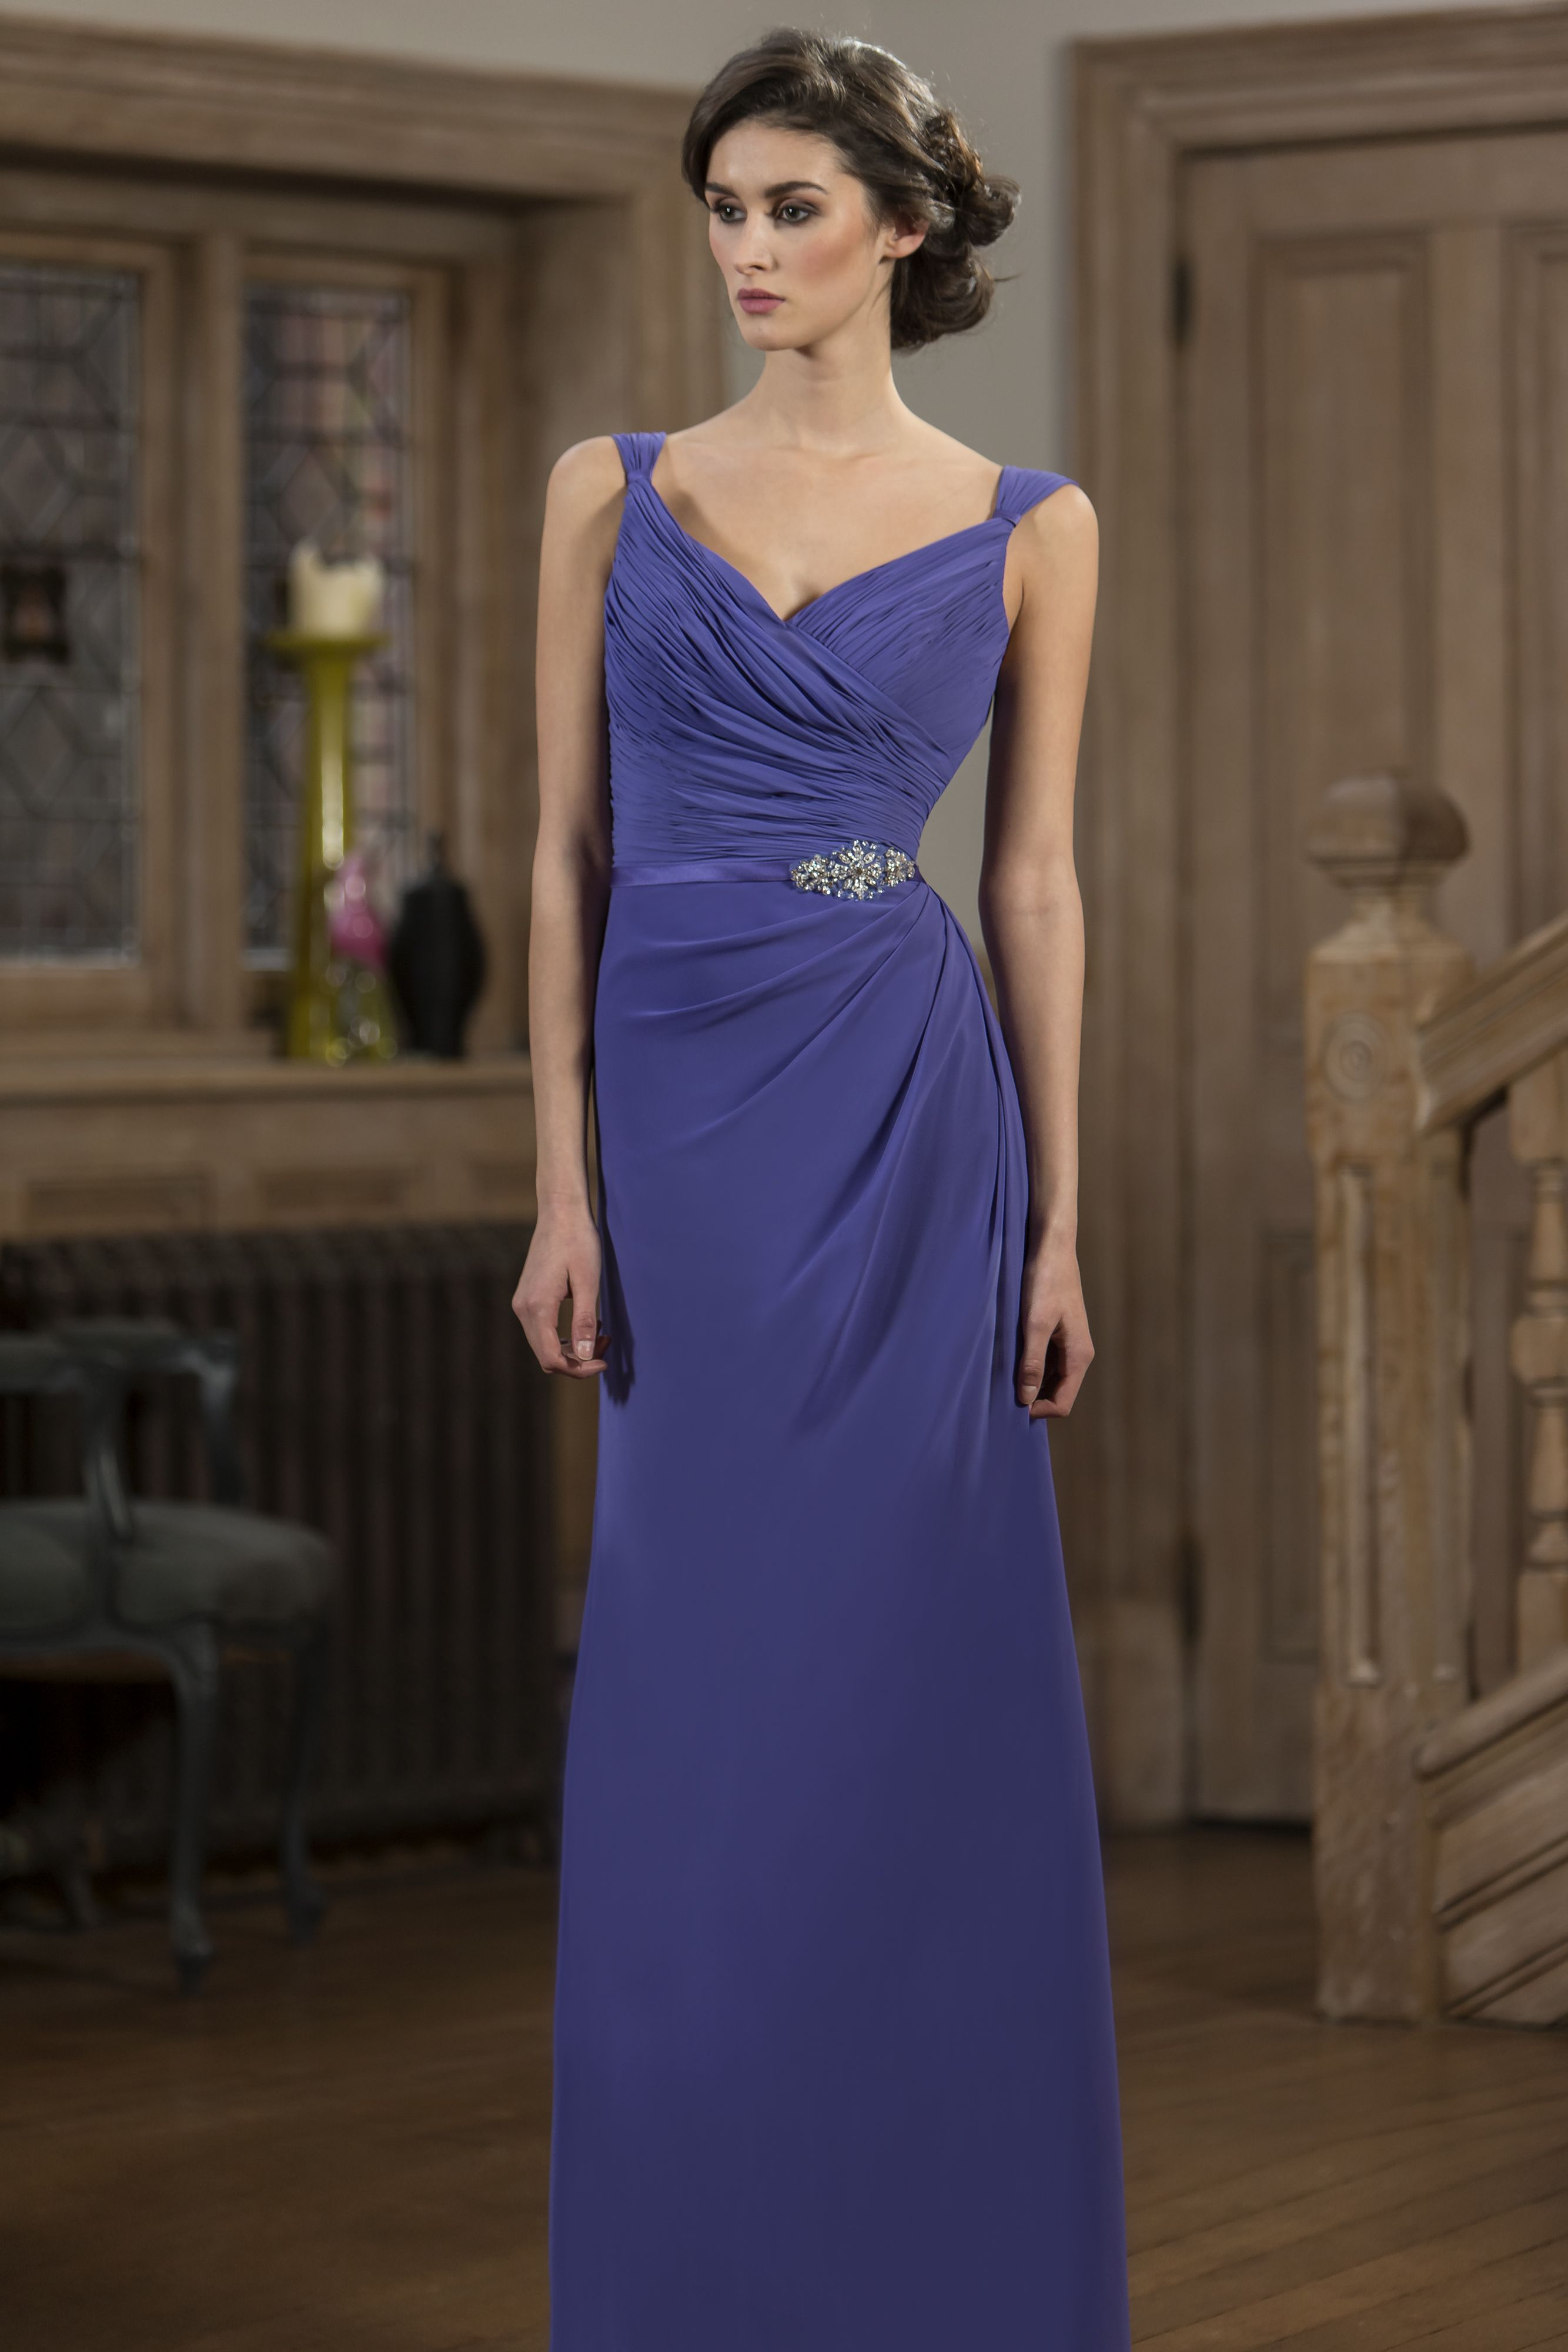 M578 - Slim fitting Chiffon bridesmaid dress with pleated bodice and ...